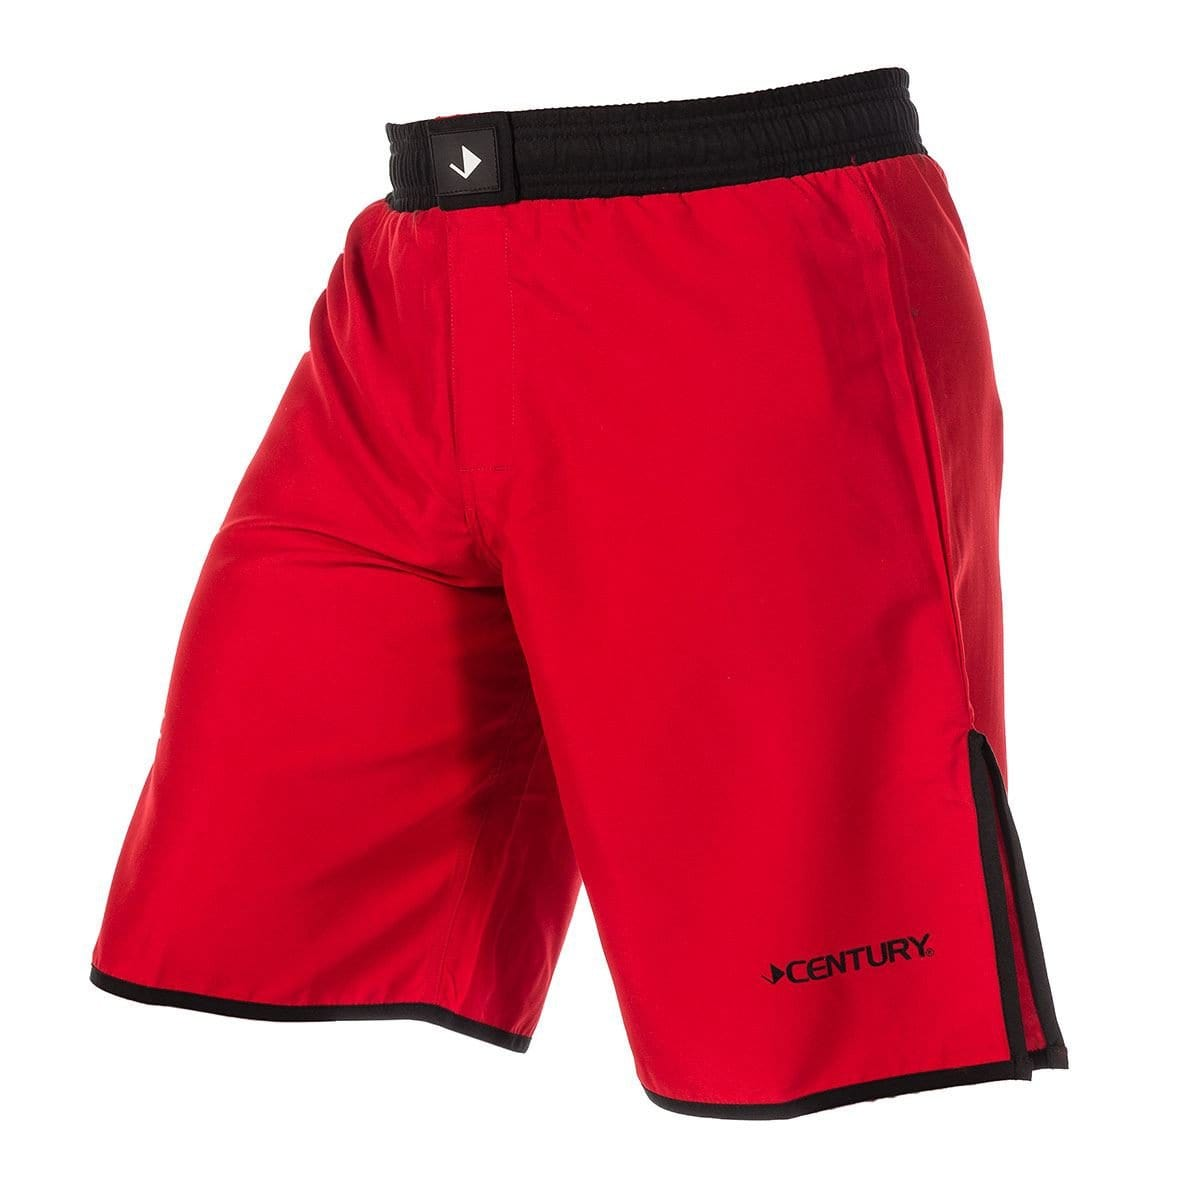 Century Adult or Kids MMA Fight Shorts  Grappling Mixed Martial arts c09407 - BlackBeltShop